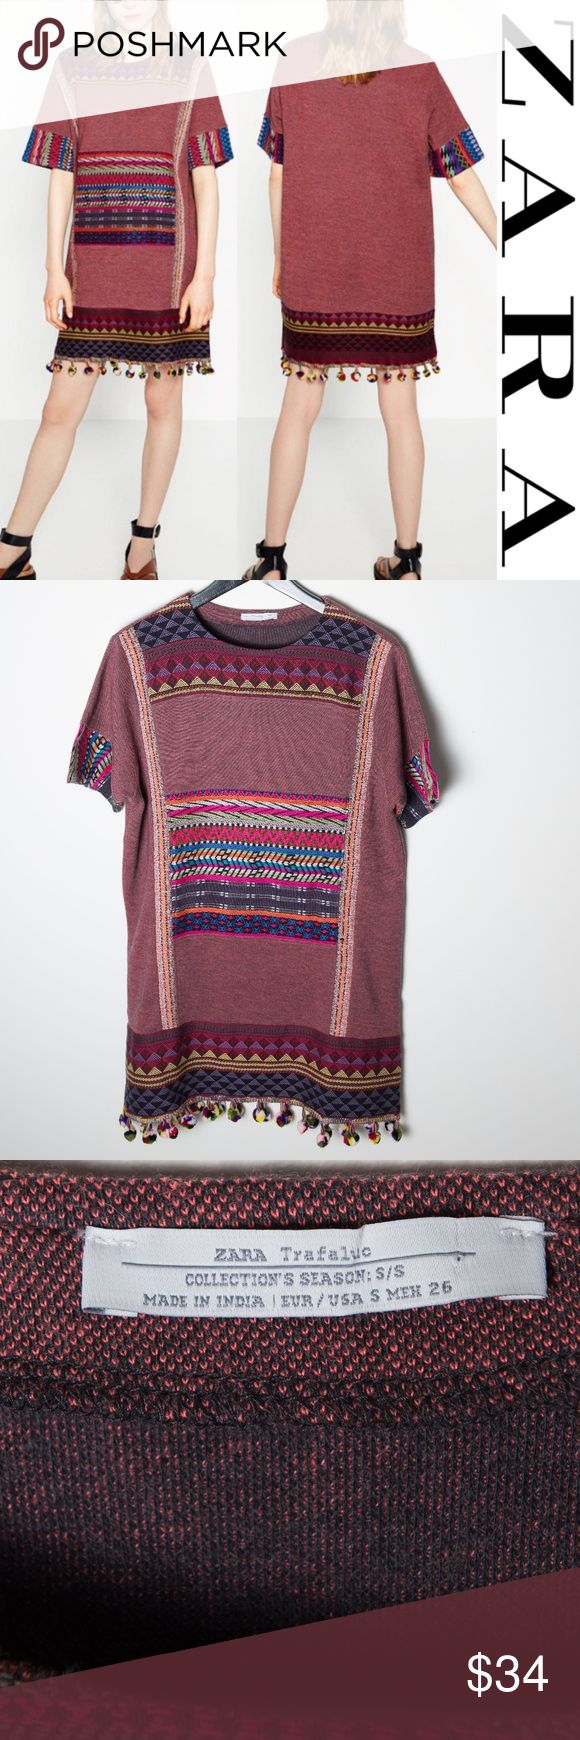 Zara Multicolor Pom Pom Shift Dress Small Zara shift dress size small. Multicolored aztec / boho dress. Short sleeve, crew neck. Detailed embroidery at hem and sleeves. Pom pom details around hem. Care and content tags have been removed - I believe it is 100% cotton. Good preloved condition. No noticeable holes, stains or rips. Zara Dresses Mini